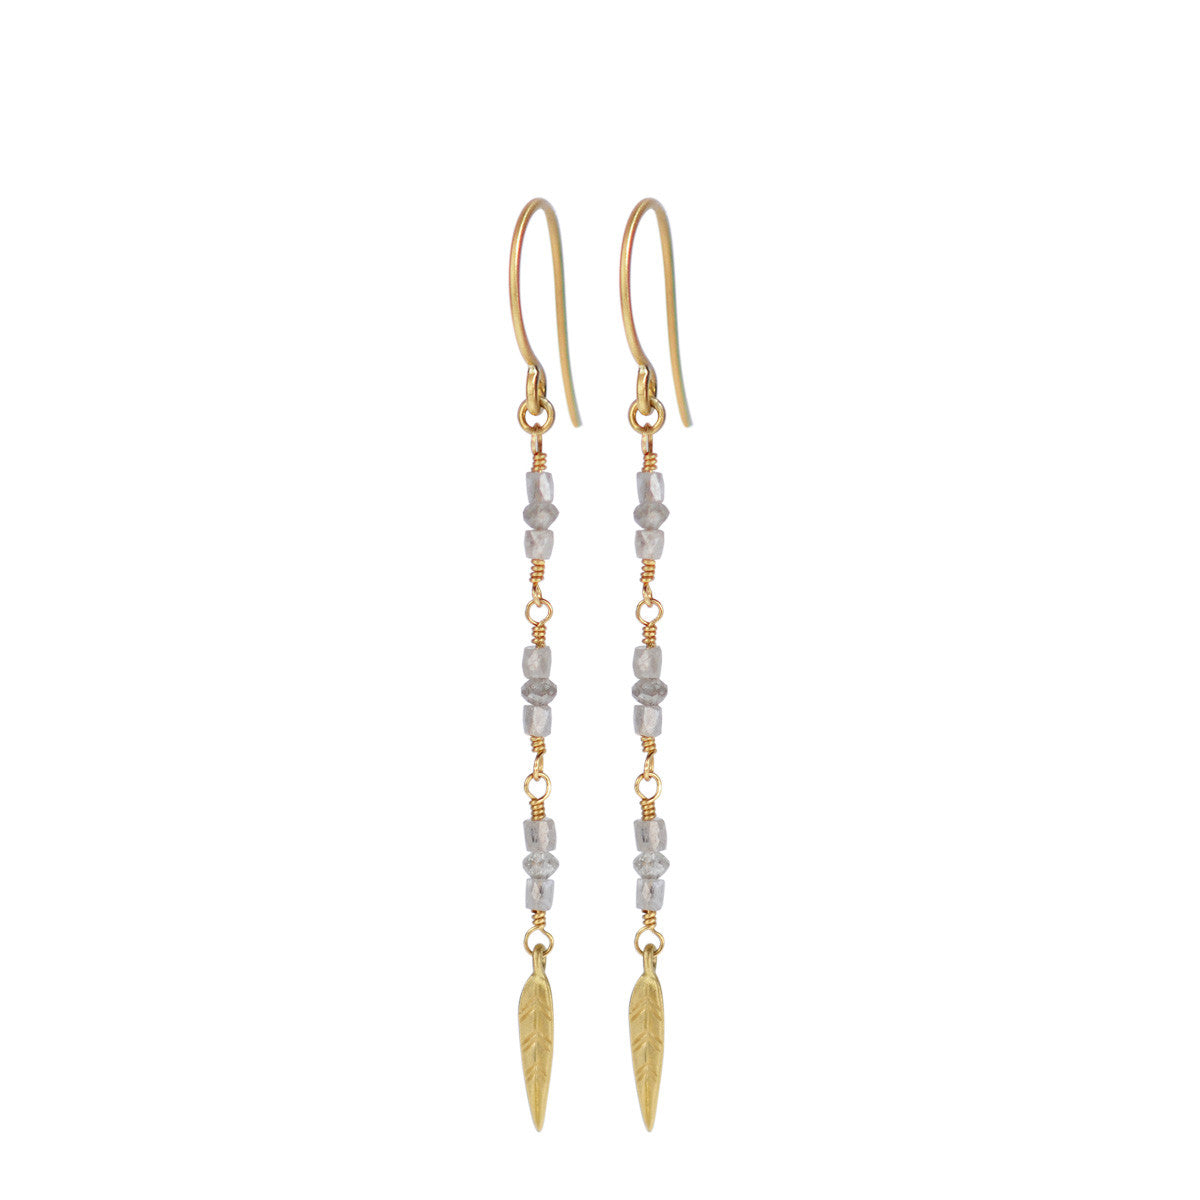 18K Gold Long Grey Diamond Earrings with Feathers